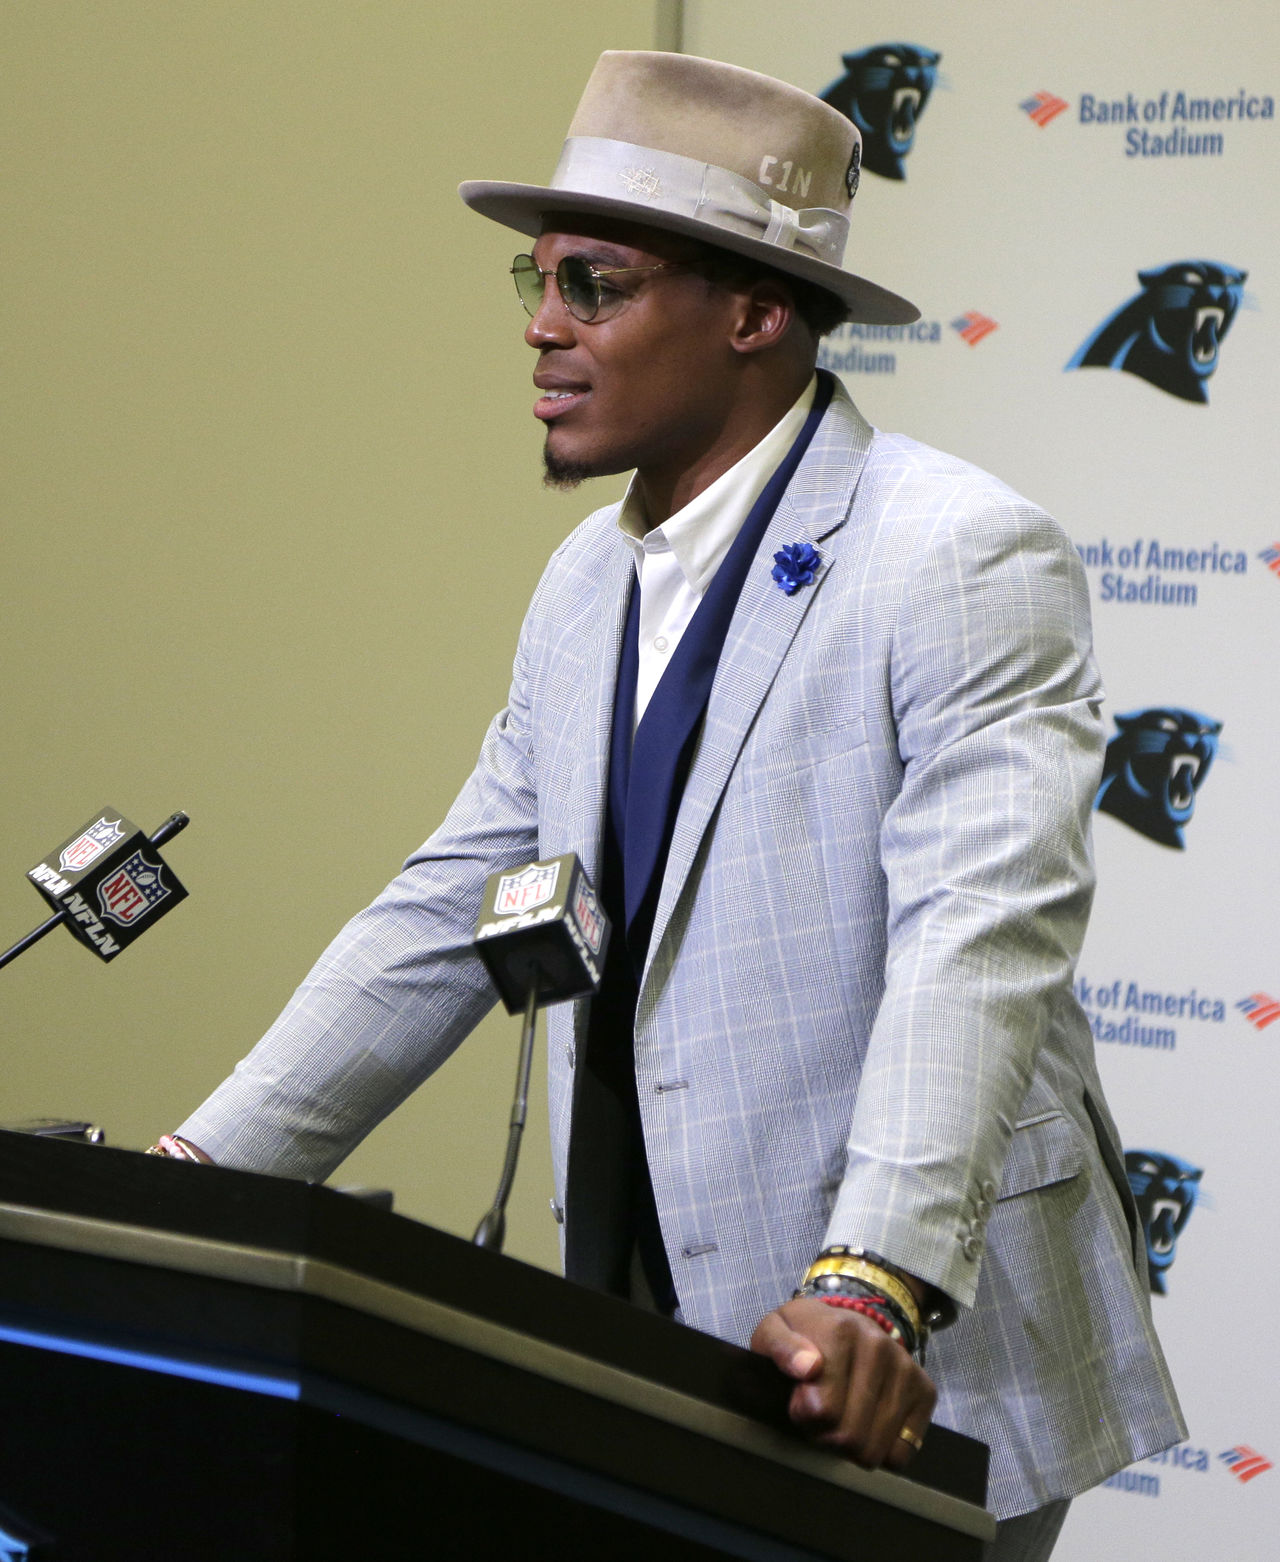 Cam Newton launches MADE Cam Newton men s clothing line 11